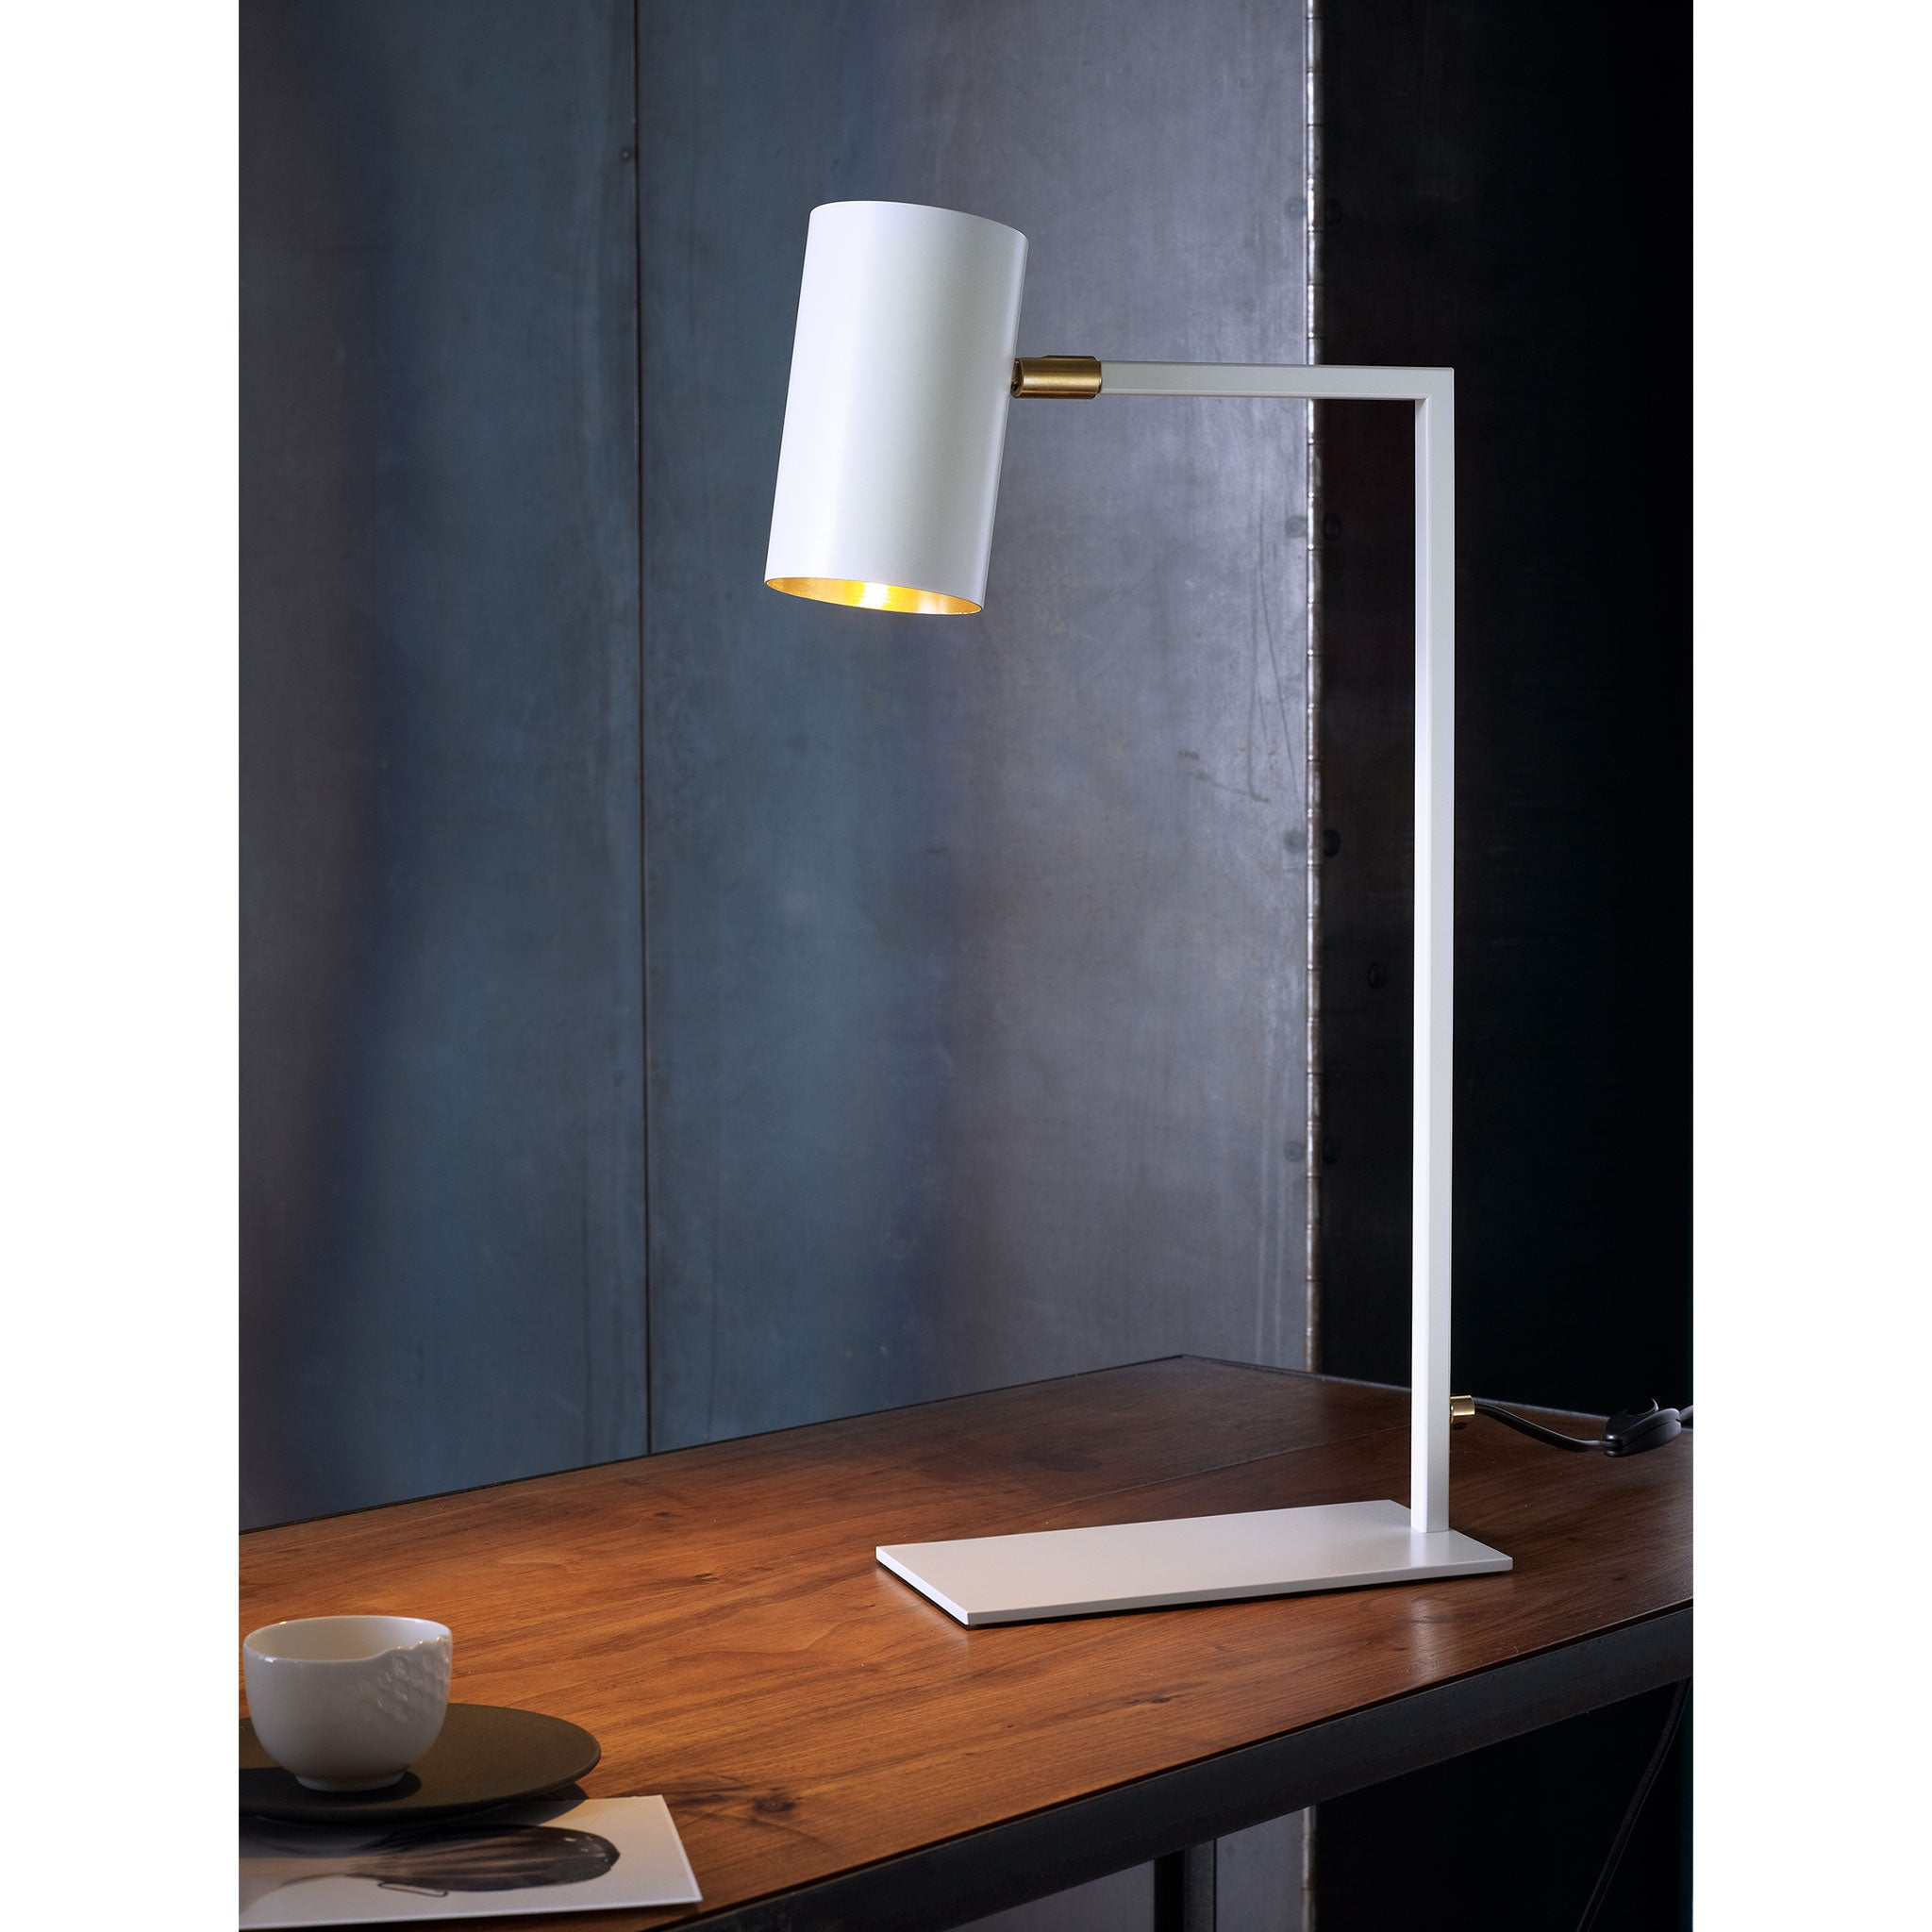 El Schmid table lamp | Kyoto